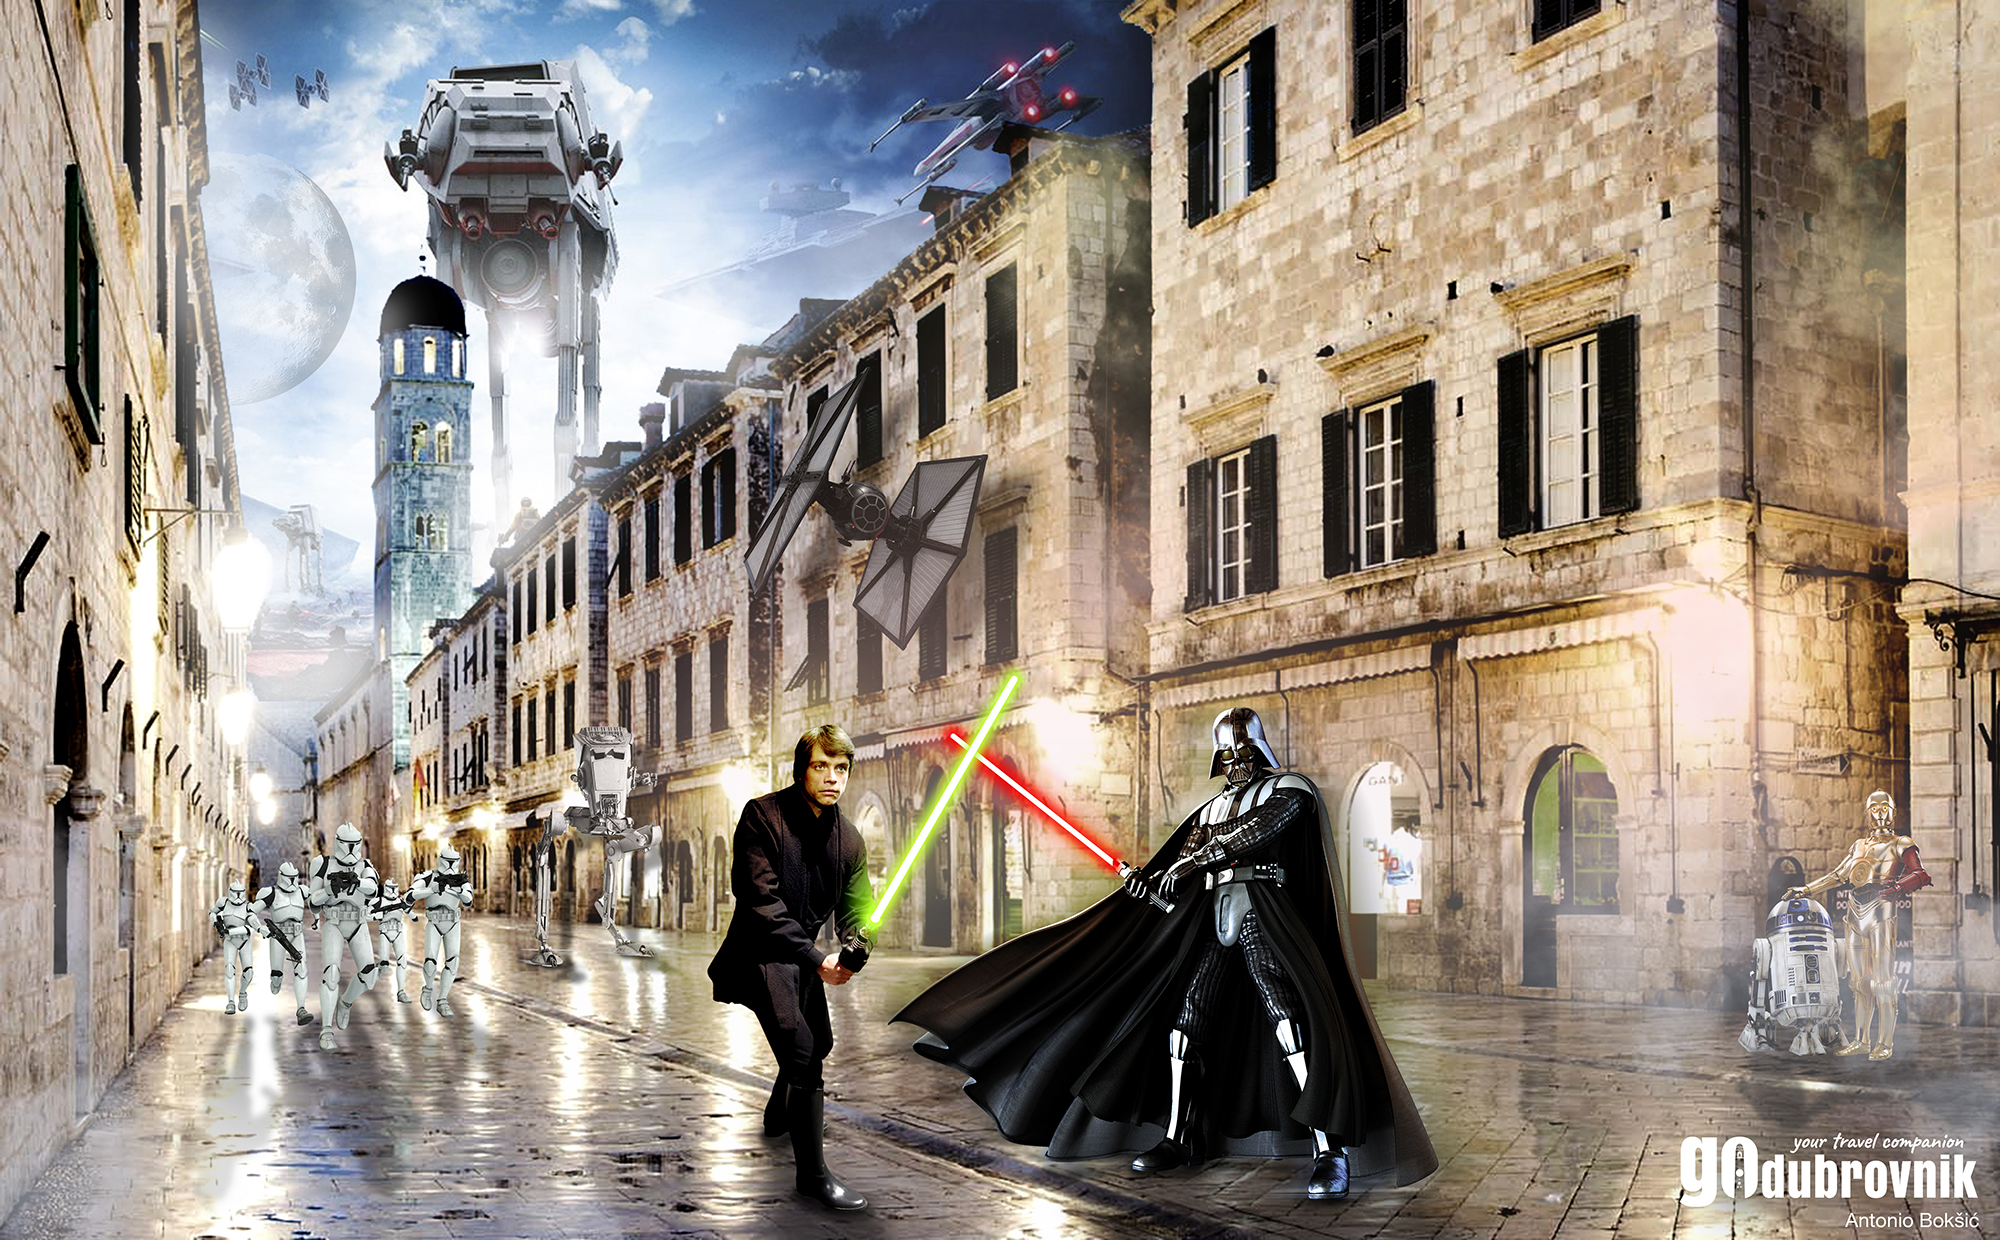 Darth Vader exclusive interview with Go Dubrovnik